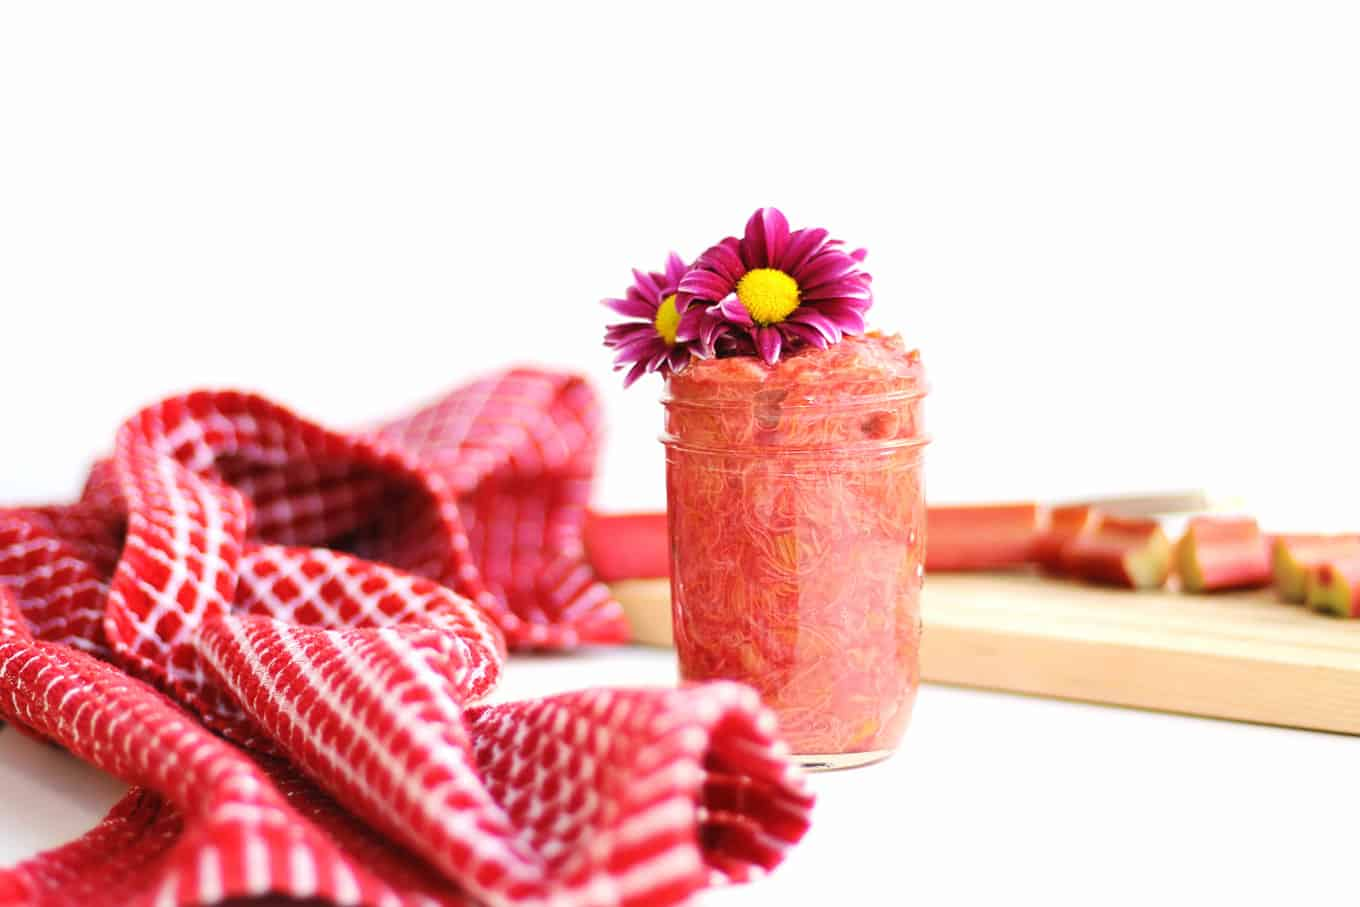 A jar of rhubarb jam with purple flowers and a red towel